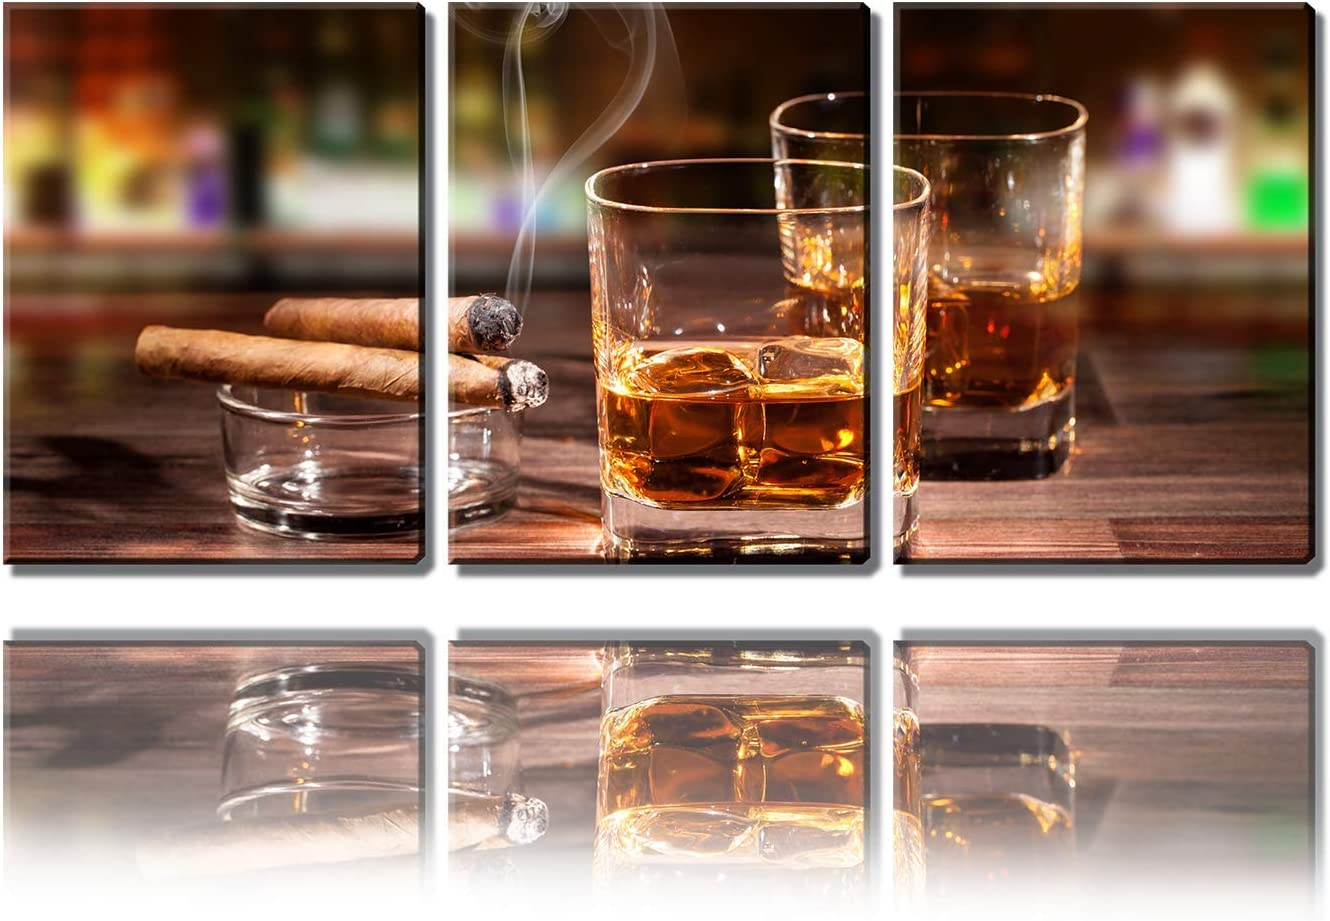 """Kitchen Wall Decor Canvas Art Still Life Cigar and Wine Whiskey Pattern Wall Art Decor Ready to Hang for Home Dining Room Pub Wall Mural Artwork 16"""" x 12"""" x 3 Pieces Framed Posters Prints Painting"""